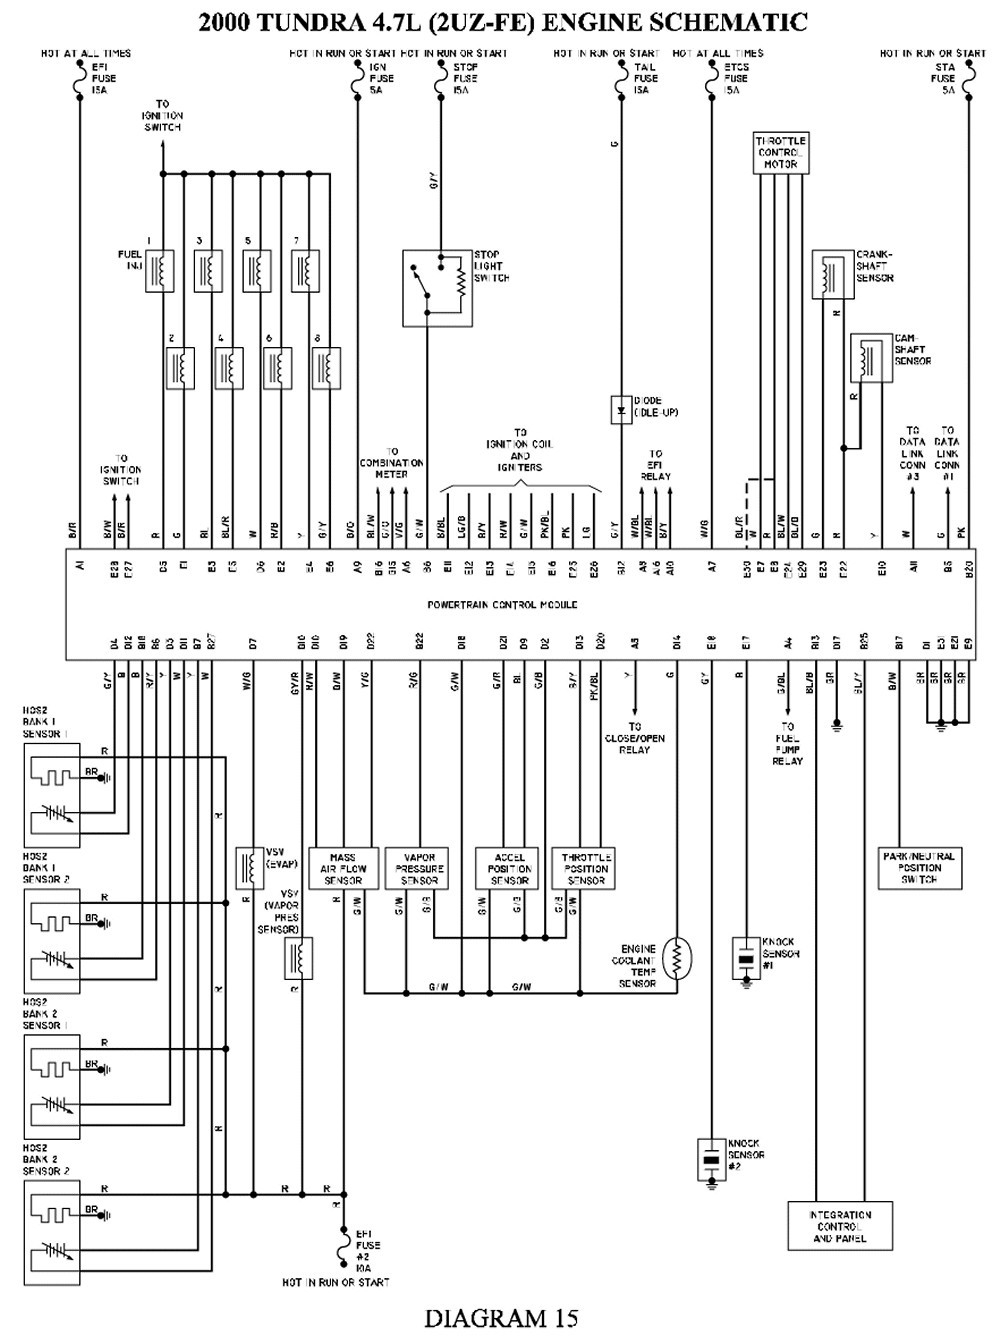 2008 tundra radio wiring diagram